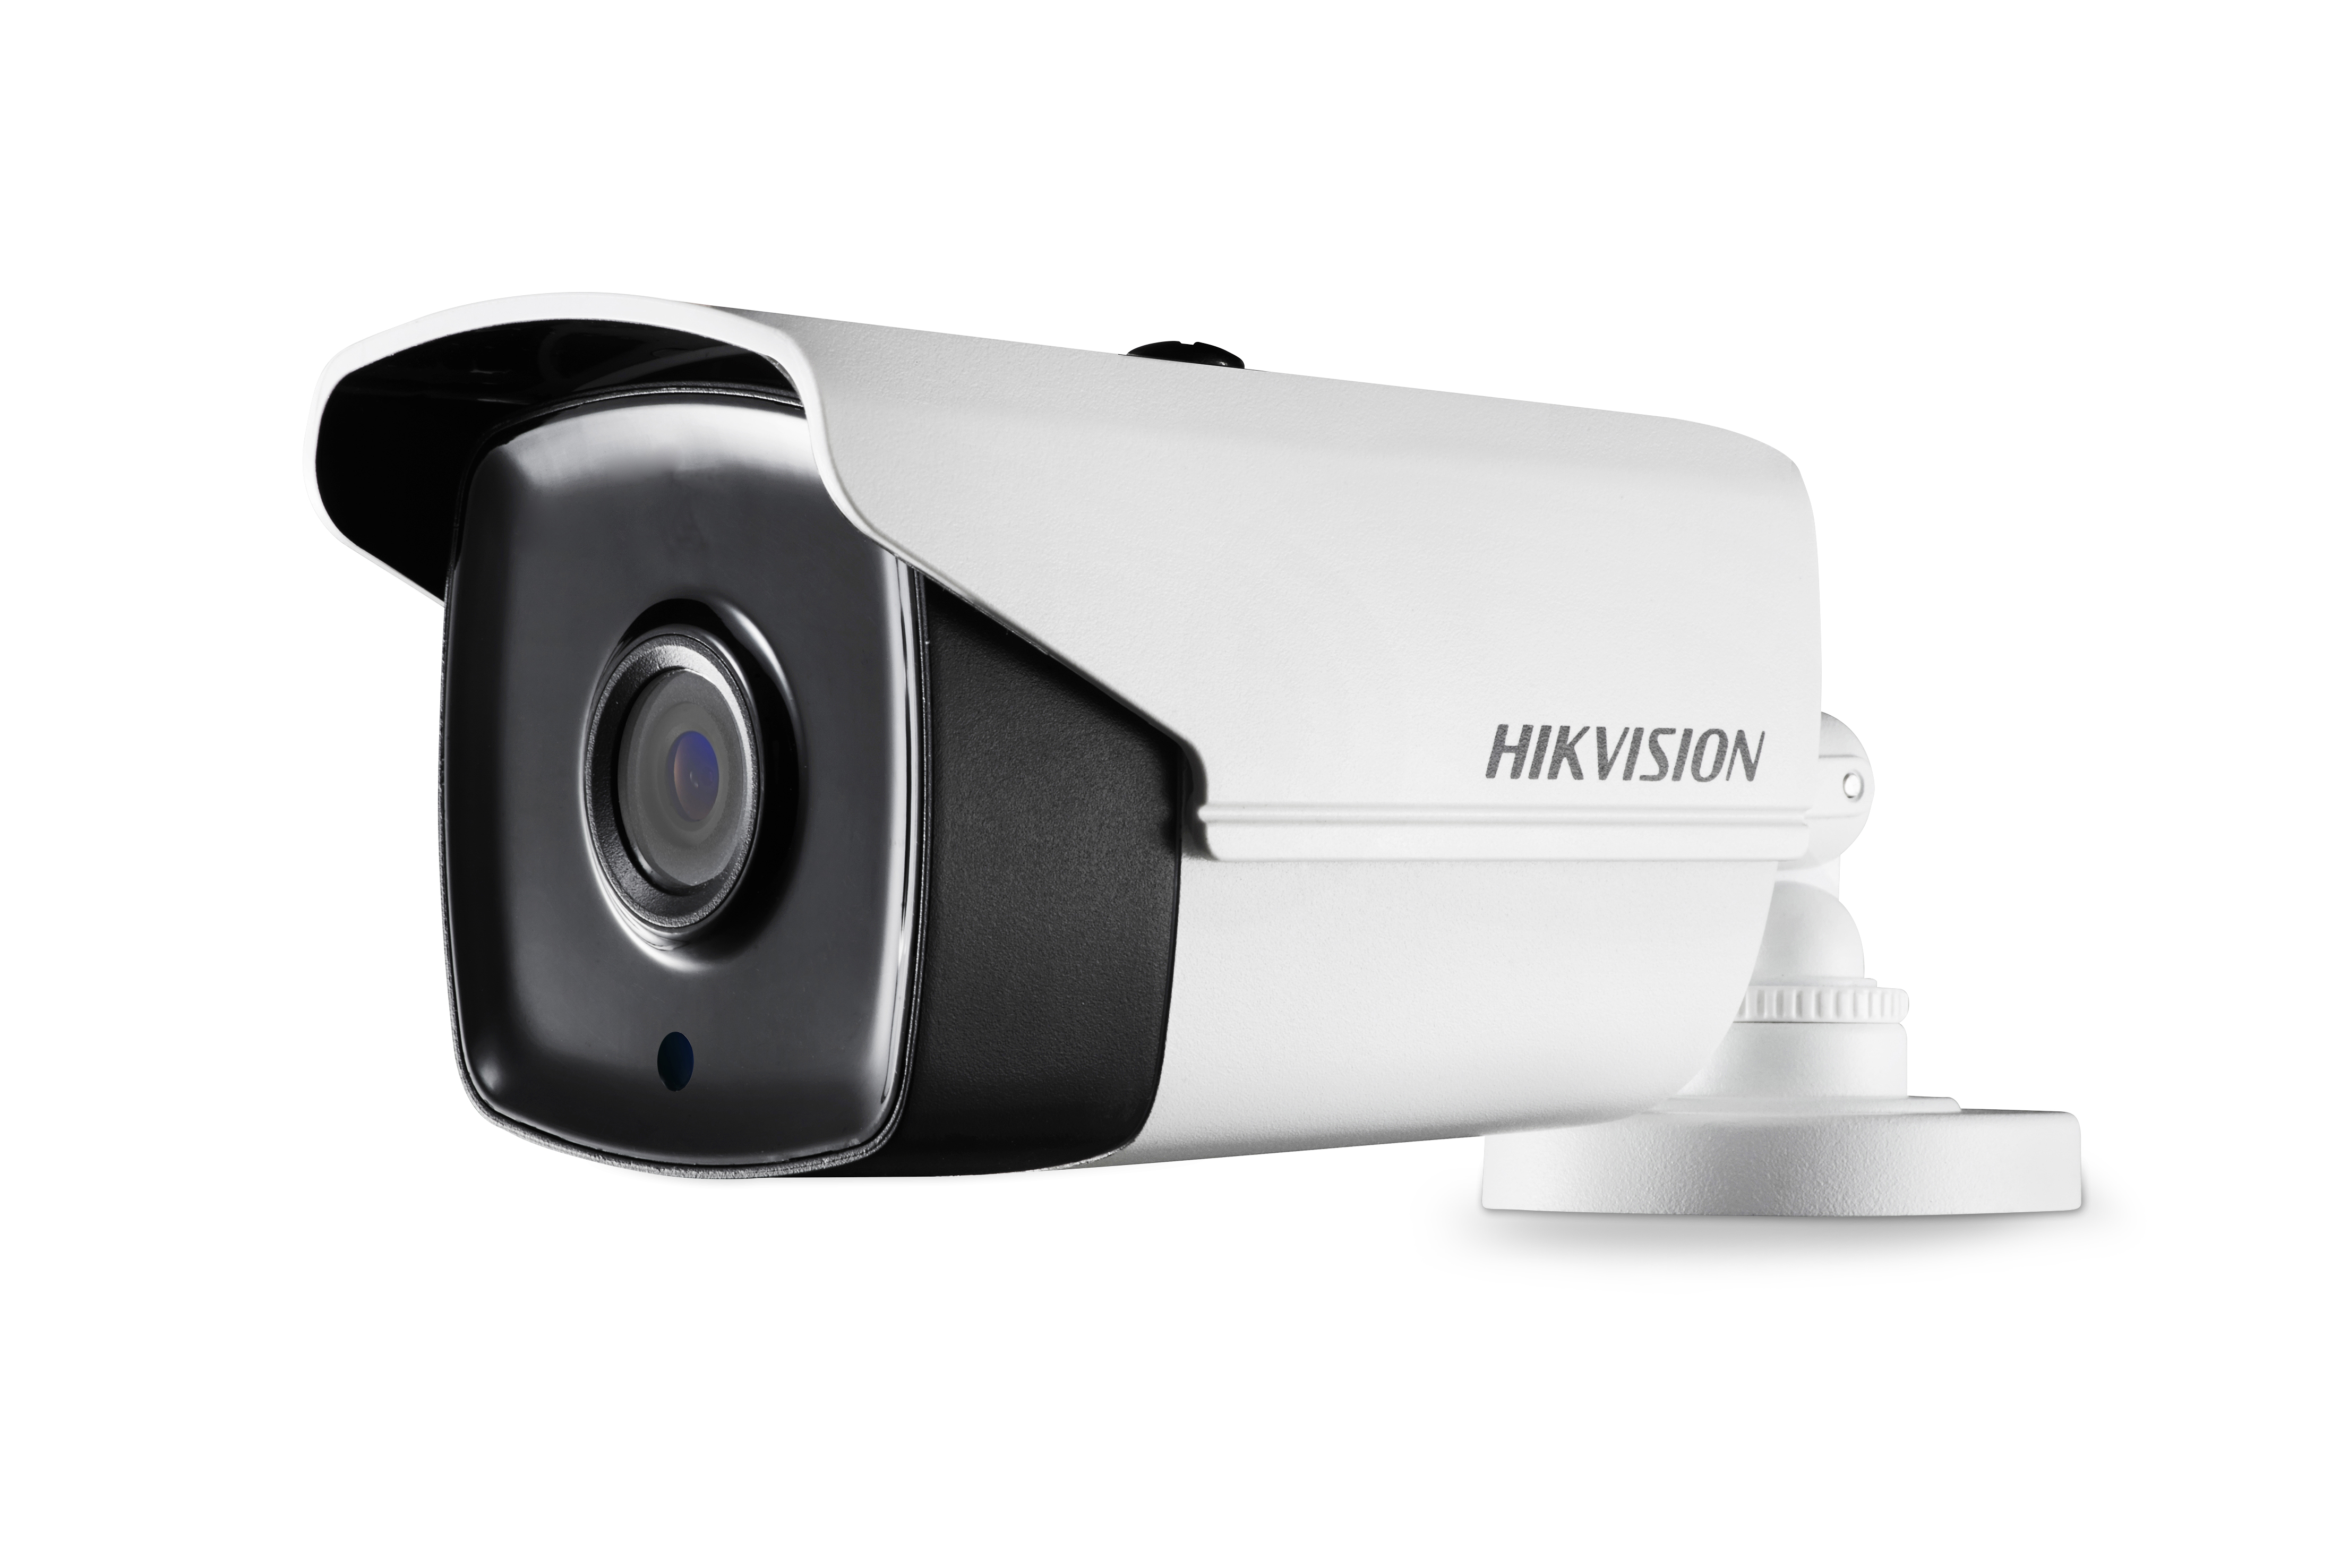 Hikvision DS-2CE16C0T-IT1F 3.6mm